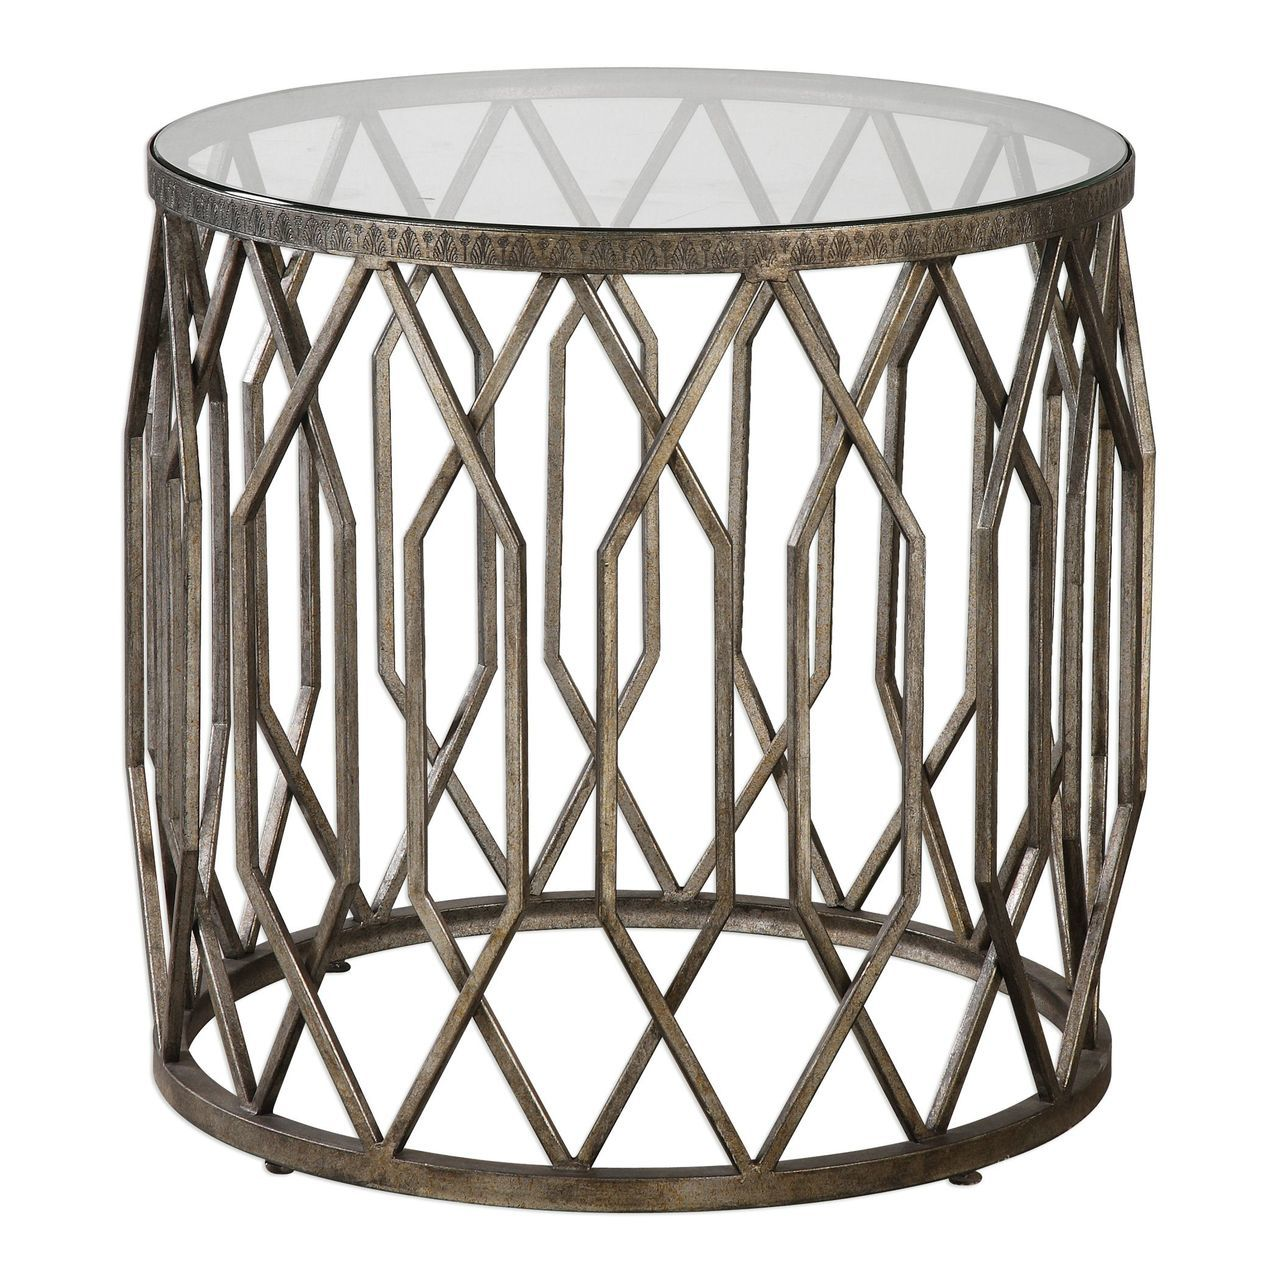 open silver fretwork drum accent table round end cage tribal dining chairs pottery barn inch wooden frog instrument target leather chair victorian style tables white wicker